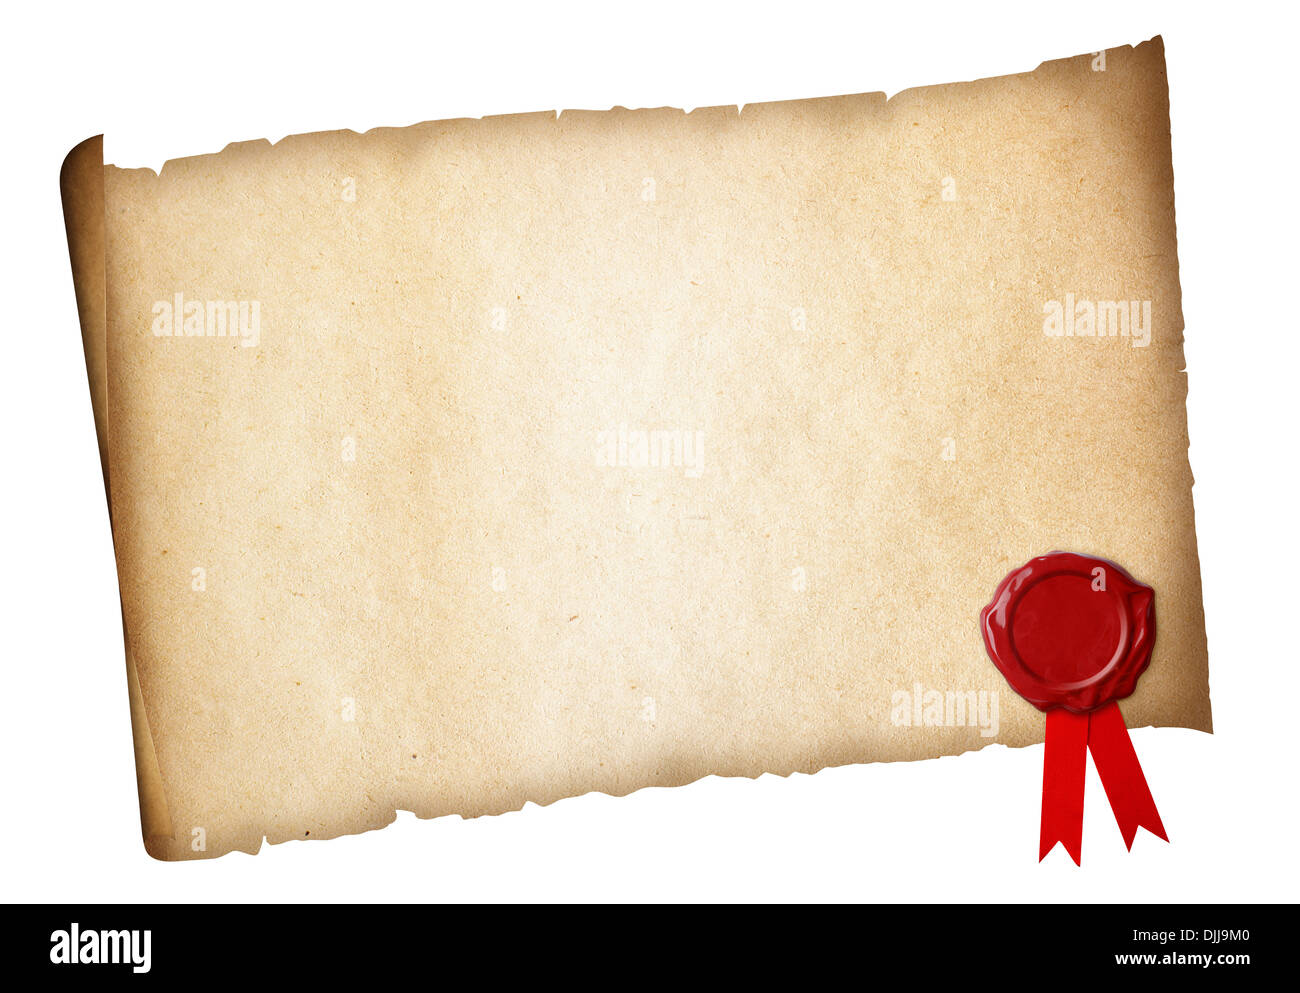 Old paper diploma or certificate parchment with wax seal isolated - Stock Image